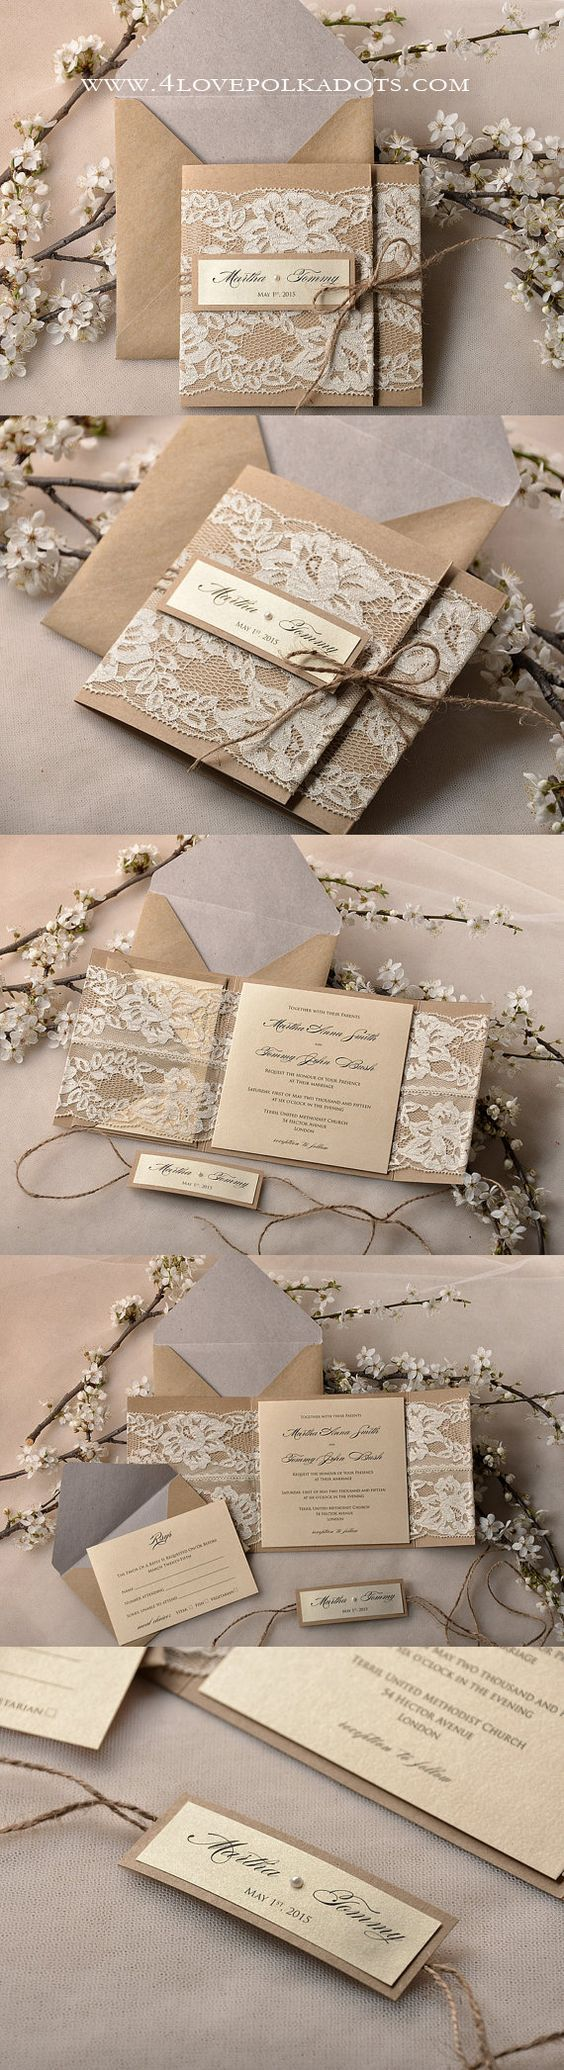 Rustic Lace Wedding Invitations  ||  @4LOVEPolkaDots